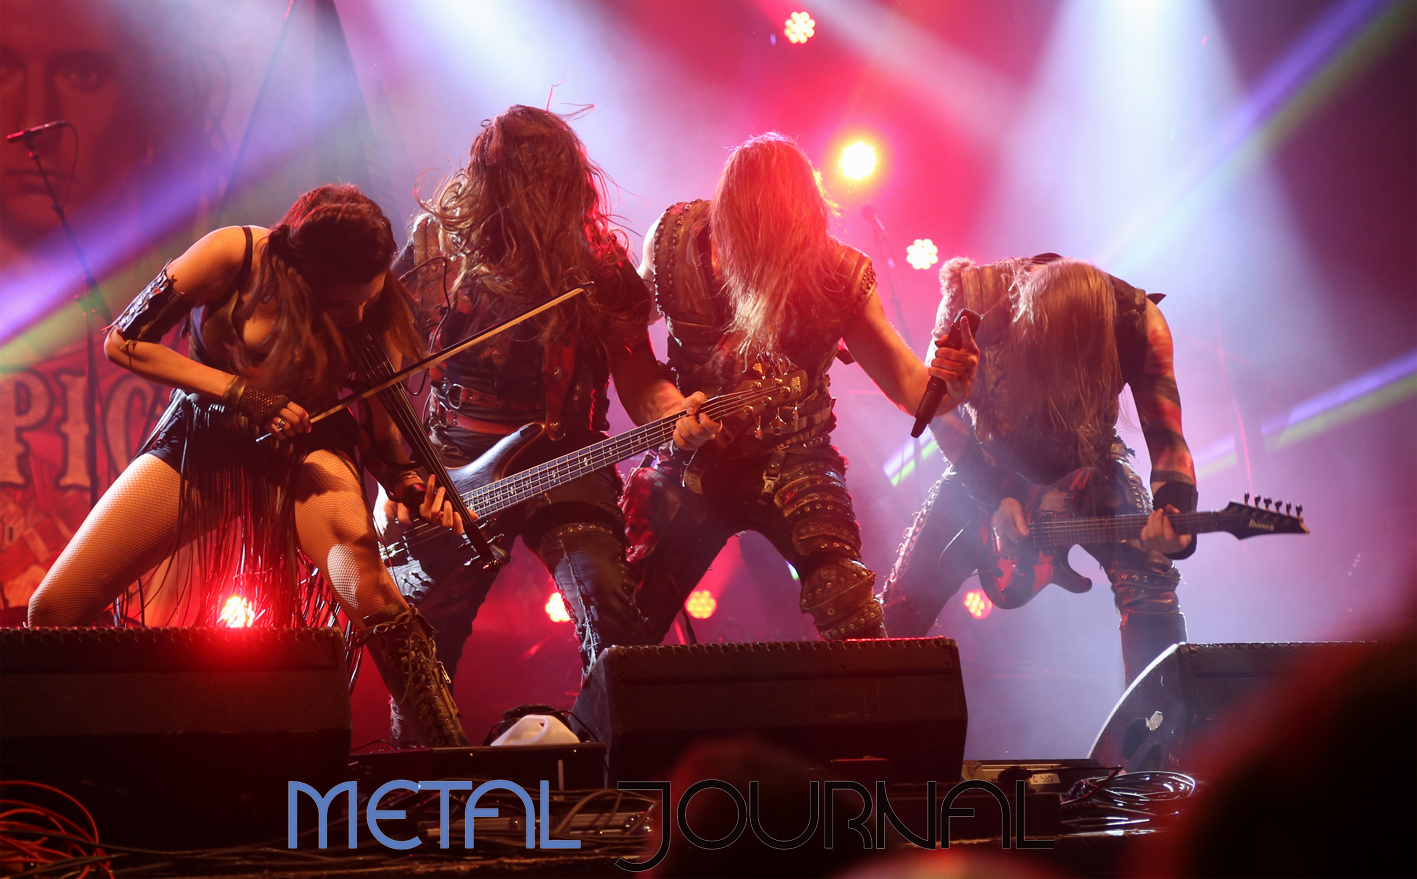 turisas metal journal bilbao 2019 pic 1